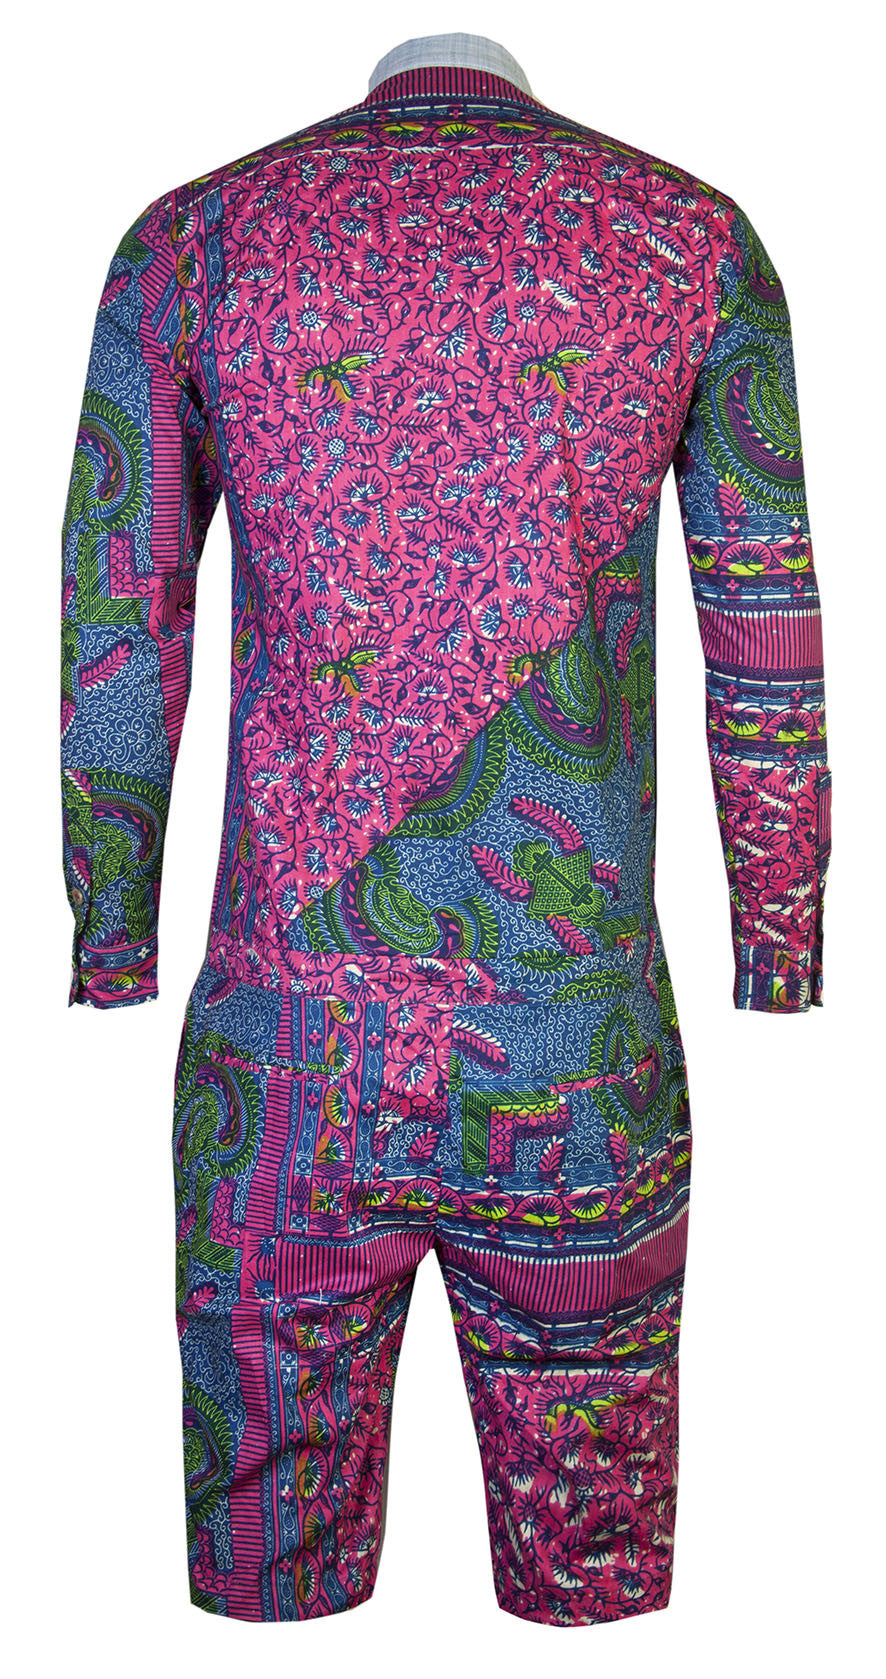 Alex Men's onesie - OHEMA OHENE AFRICAN INSPIRED FASHION  - 2